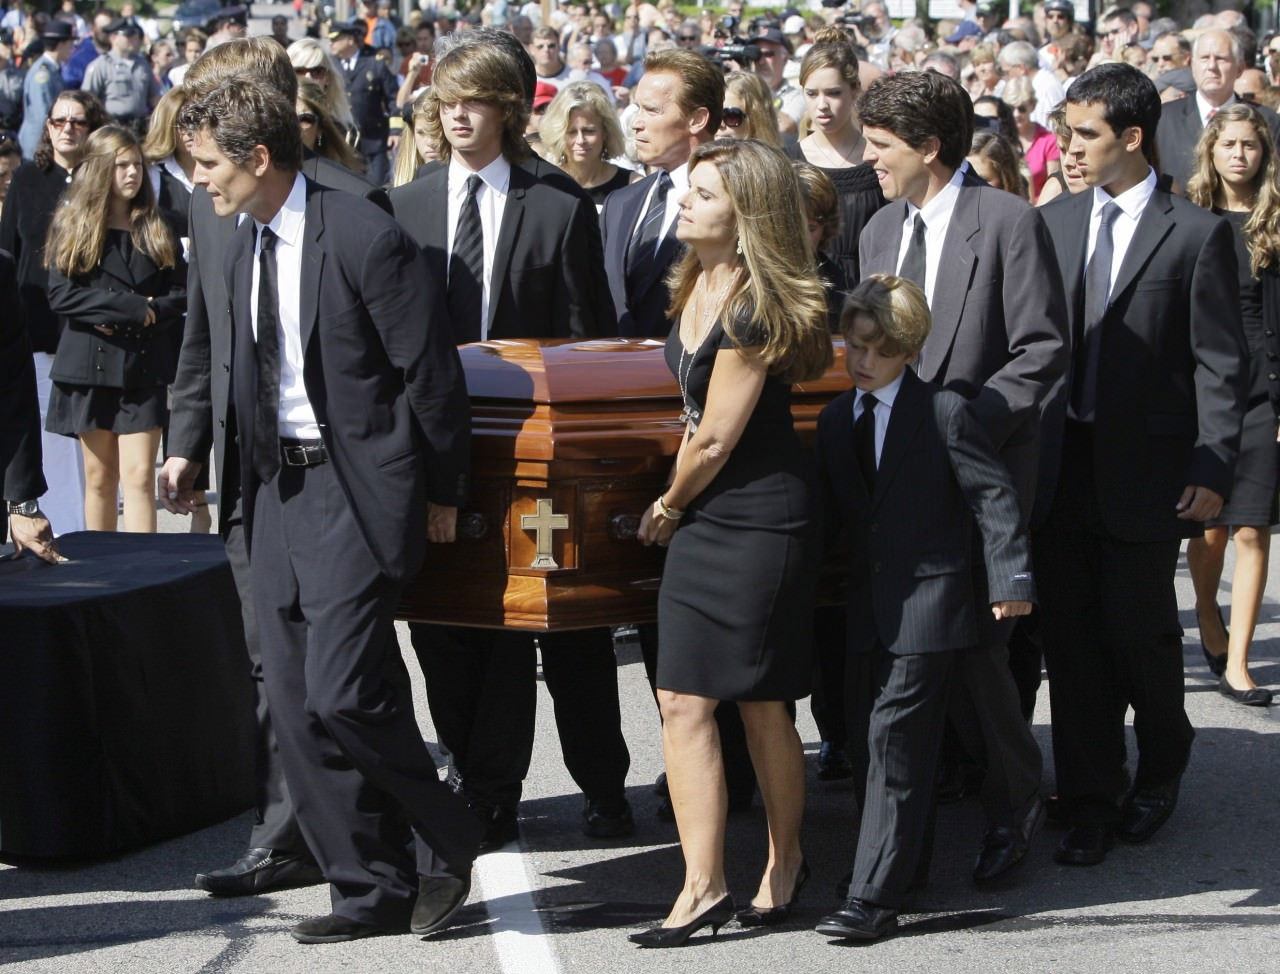 Dark suits are obligatory for funerals